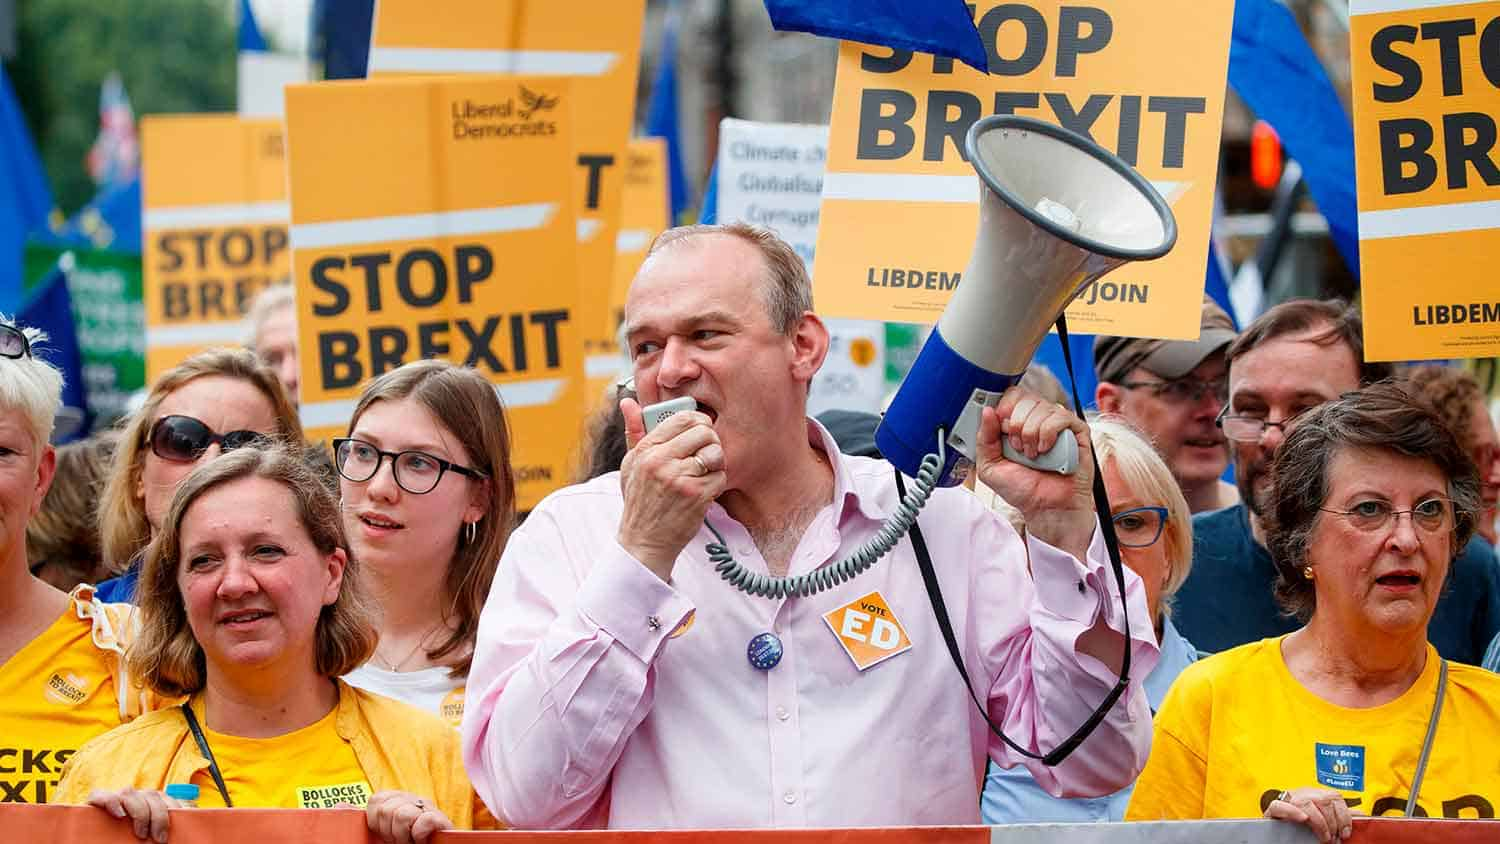 Sir Ed Davey MP addressing a crowd with a megaphone, in the background supporters are dressed in yellow